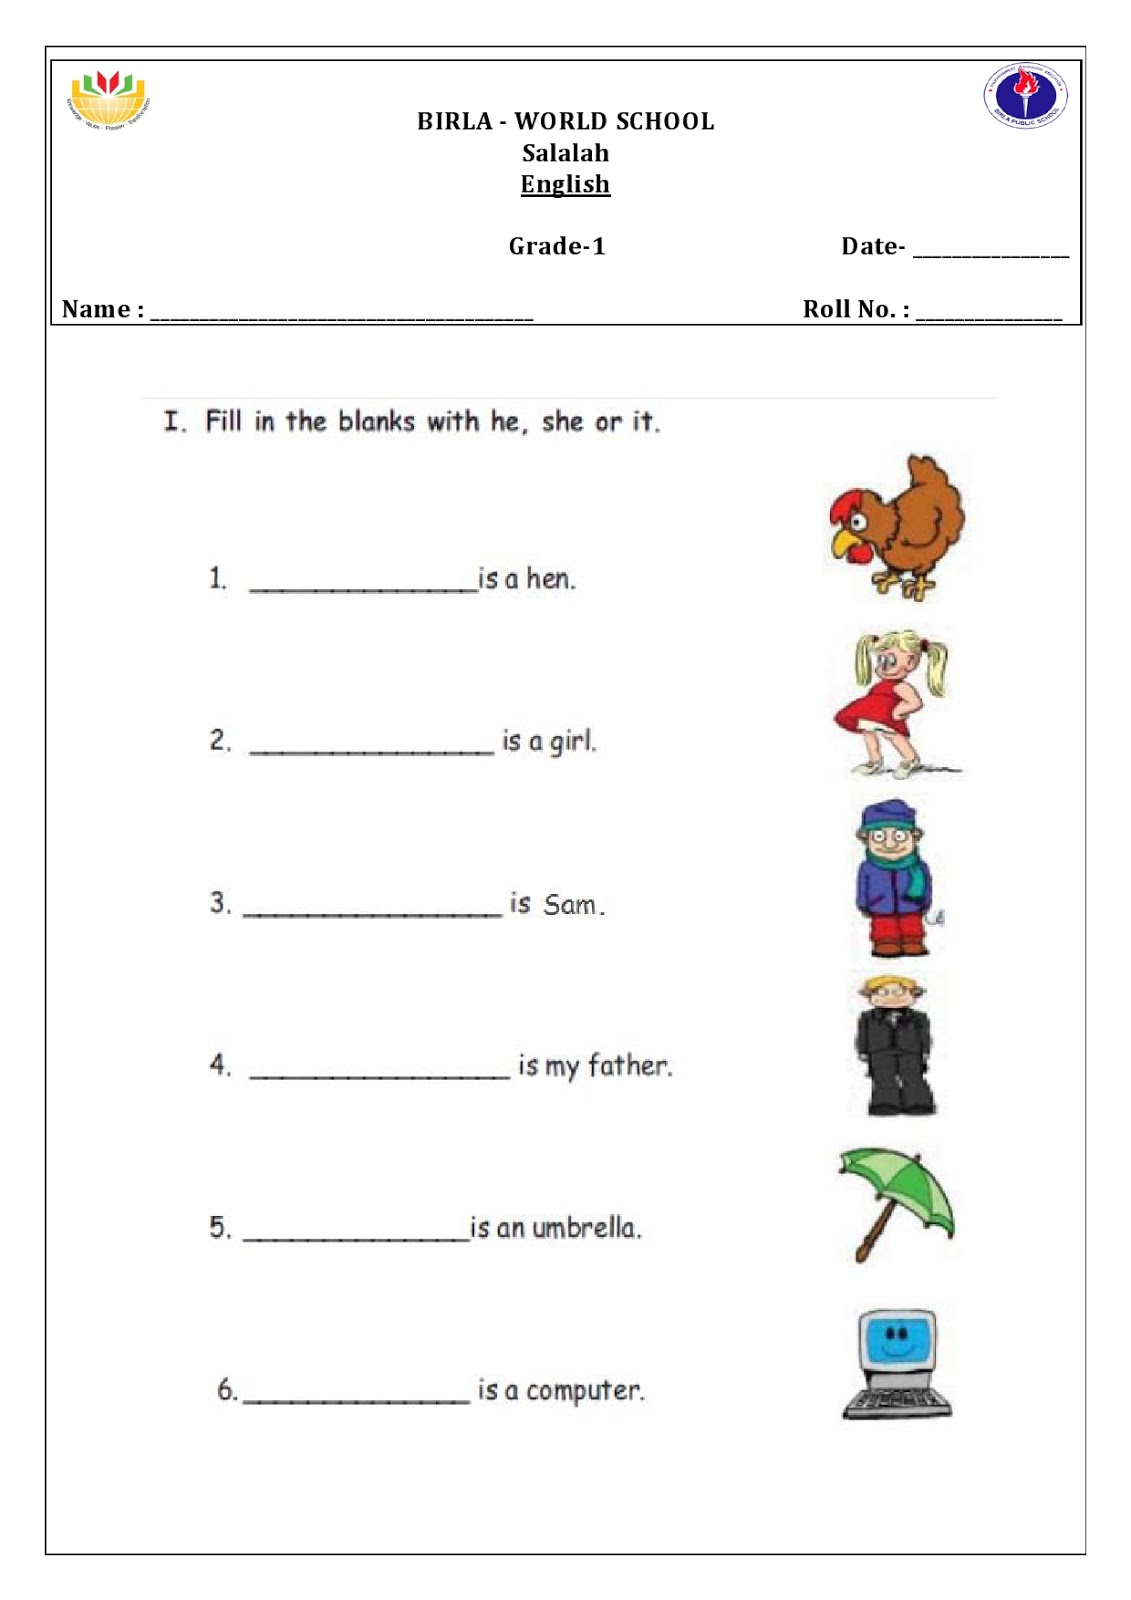 Worksheet Homework For Grade 1 birla world school oman homework for grade 1b on 11215 11215